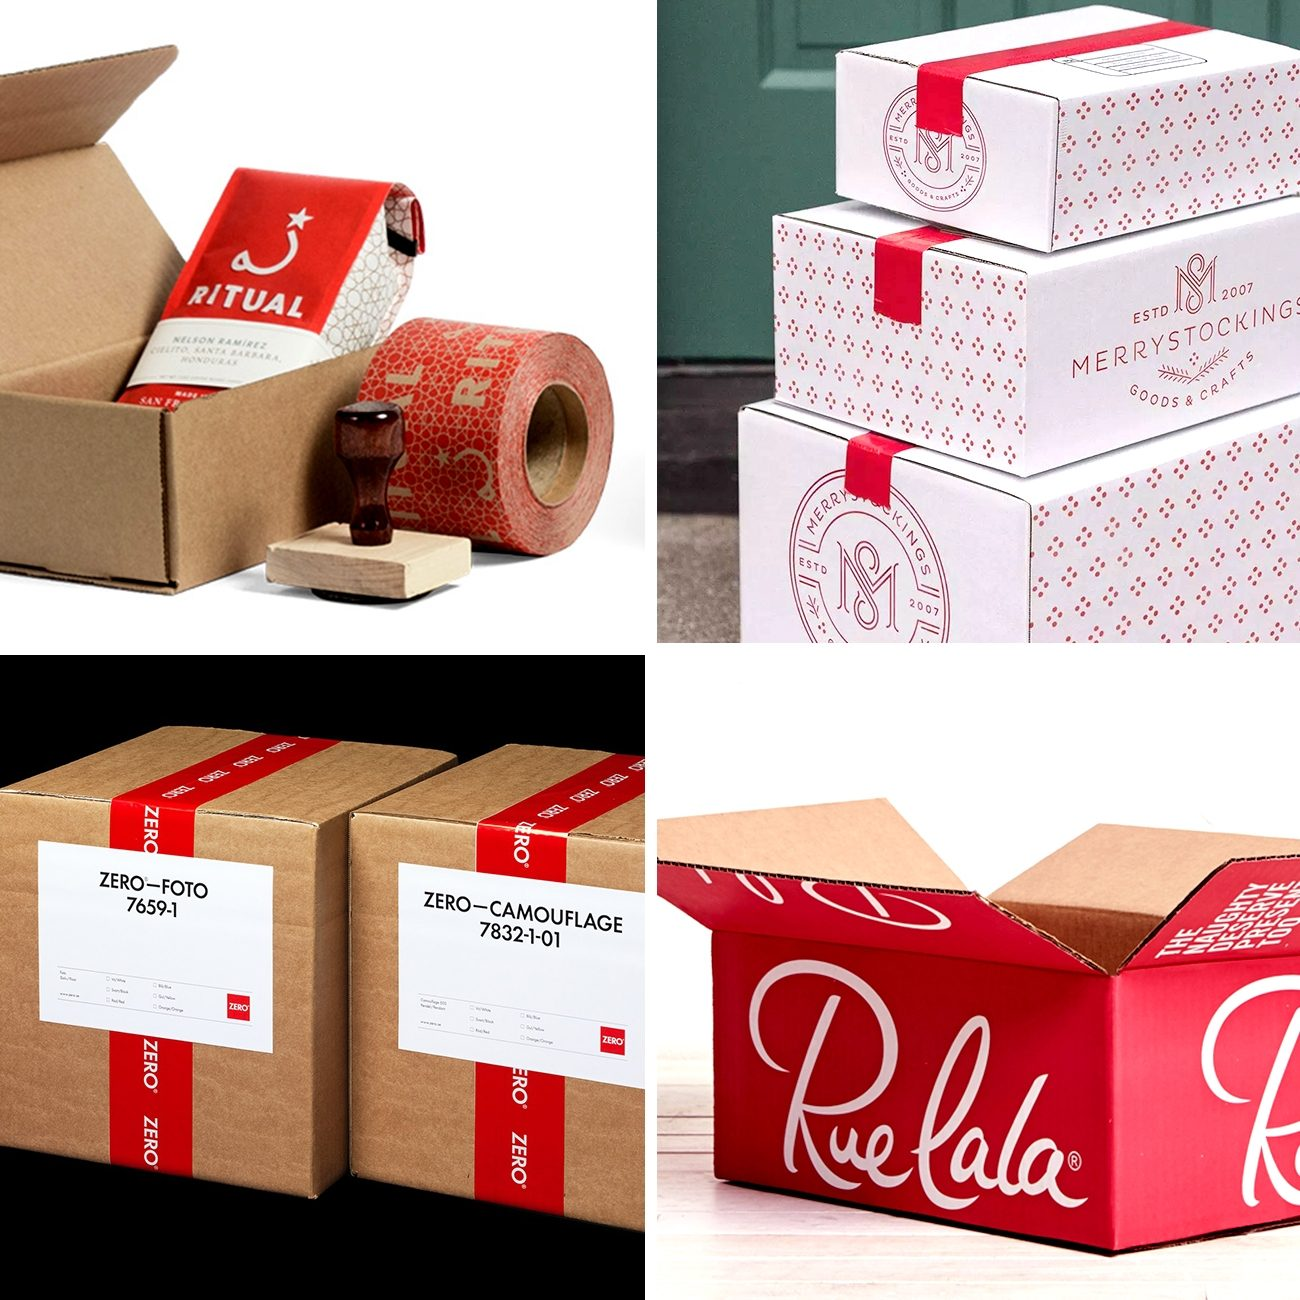 60 ideas to spruce up your holiday packaging design photos via page three hundred lumicom studio mpls henrik nygren - Packaging Design Ideas